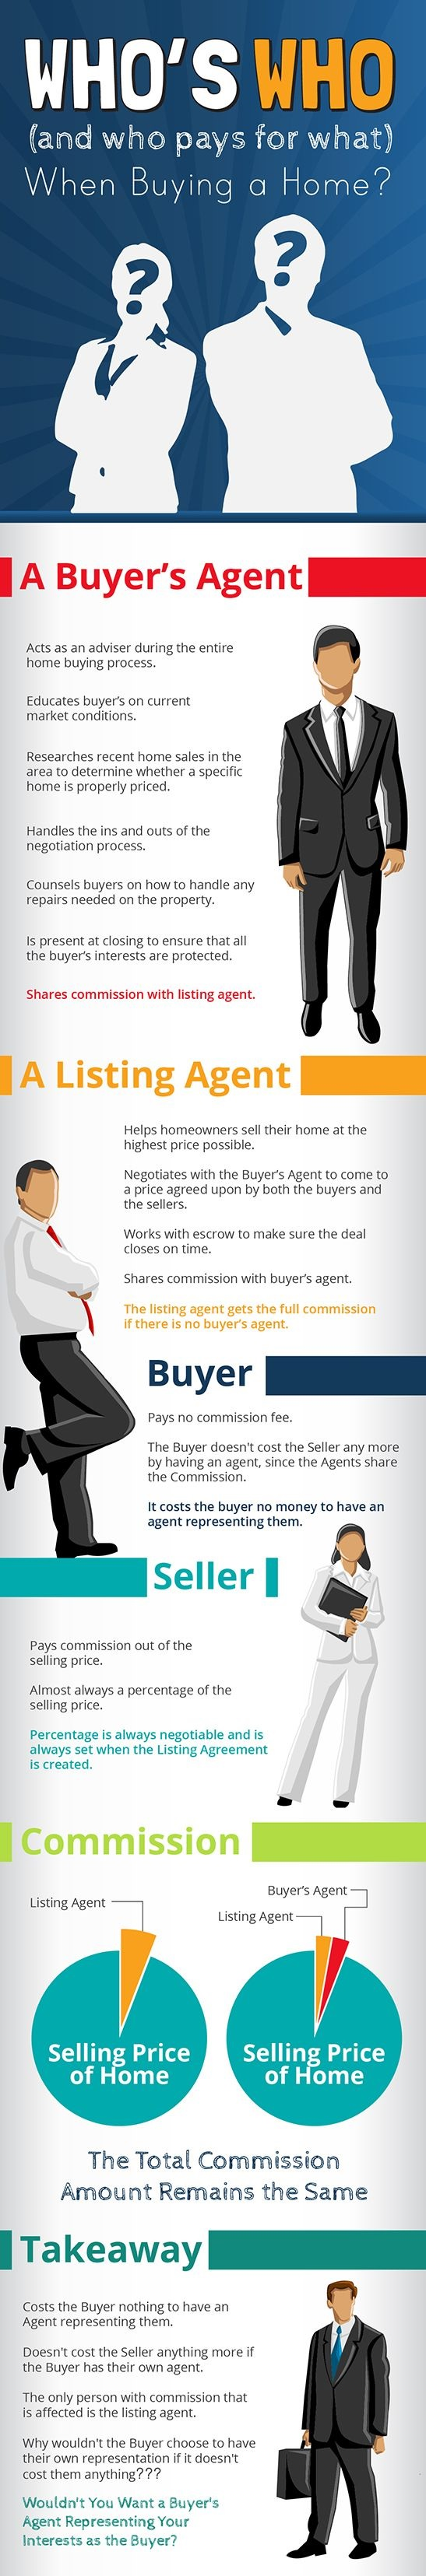 roles in a real estate transaction.jpg